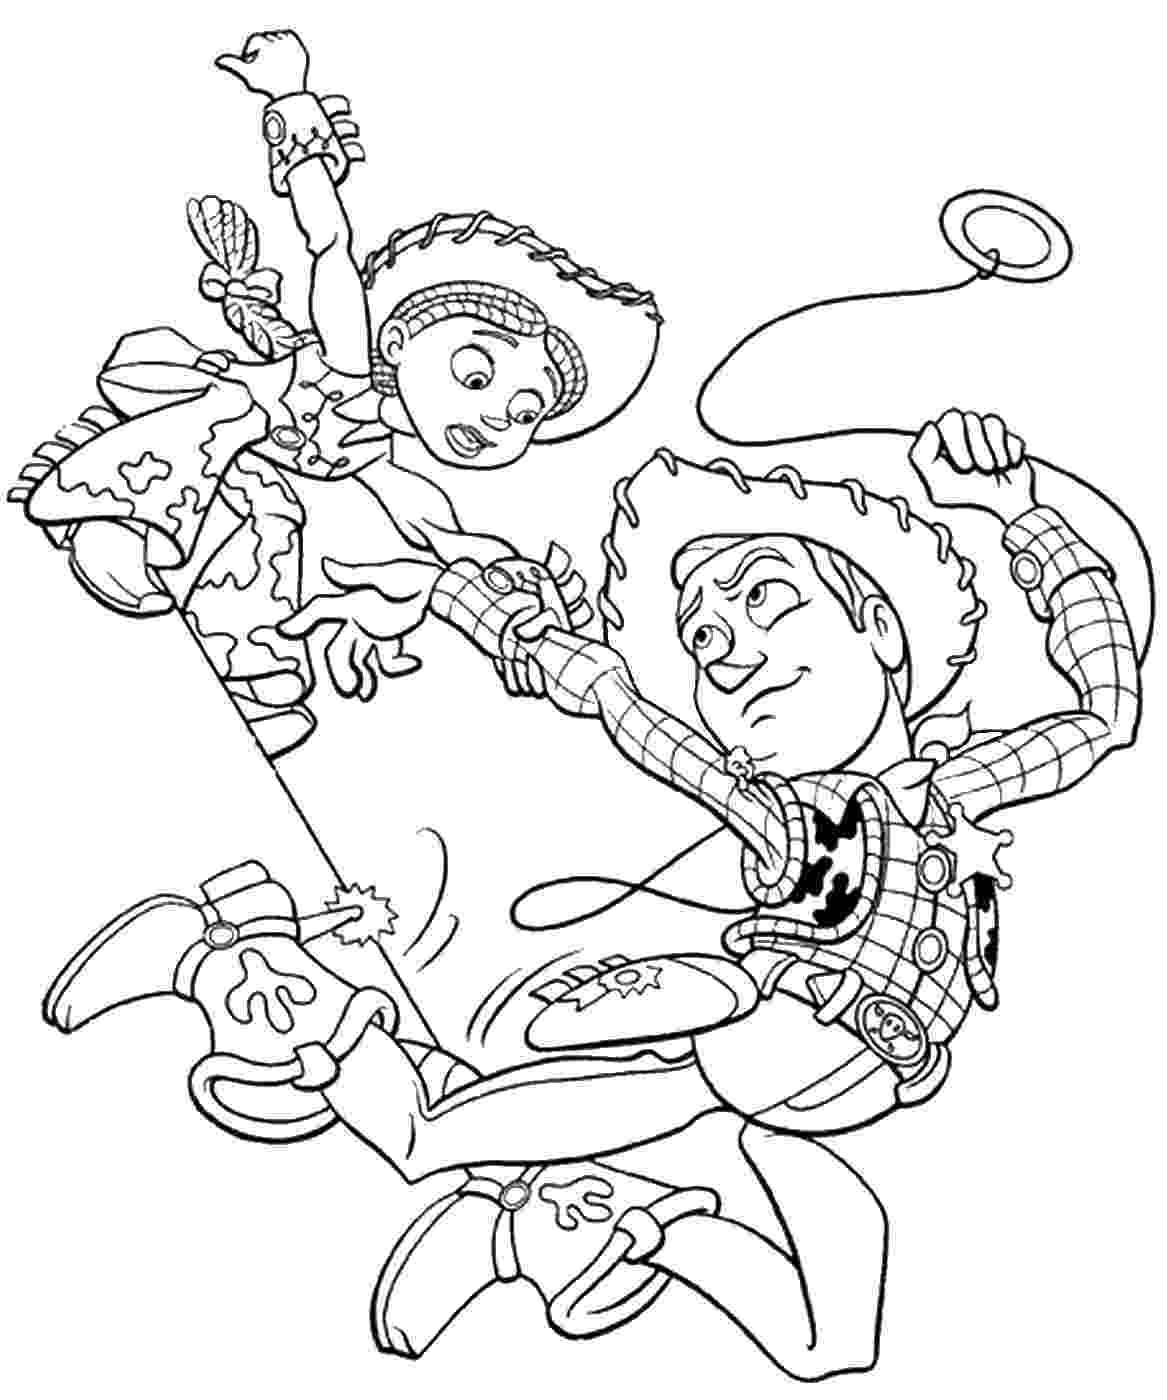 toy story 2 pictures to colour woody riding dog toy story 2 coloring page coloring 4 story toy pictures colour to 2